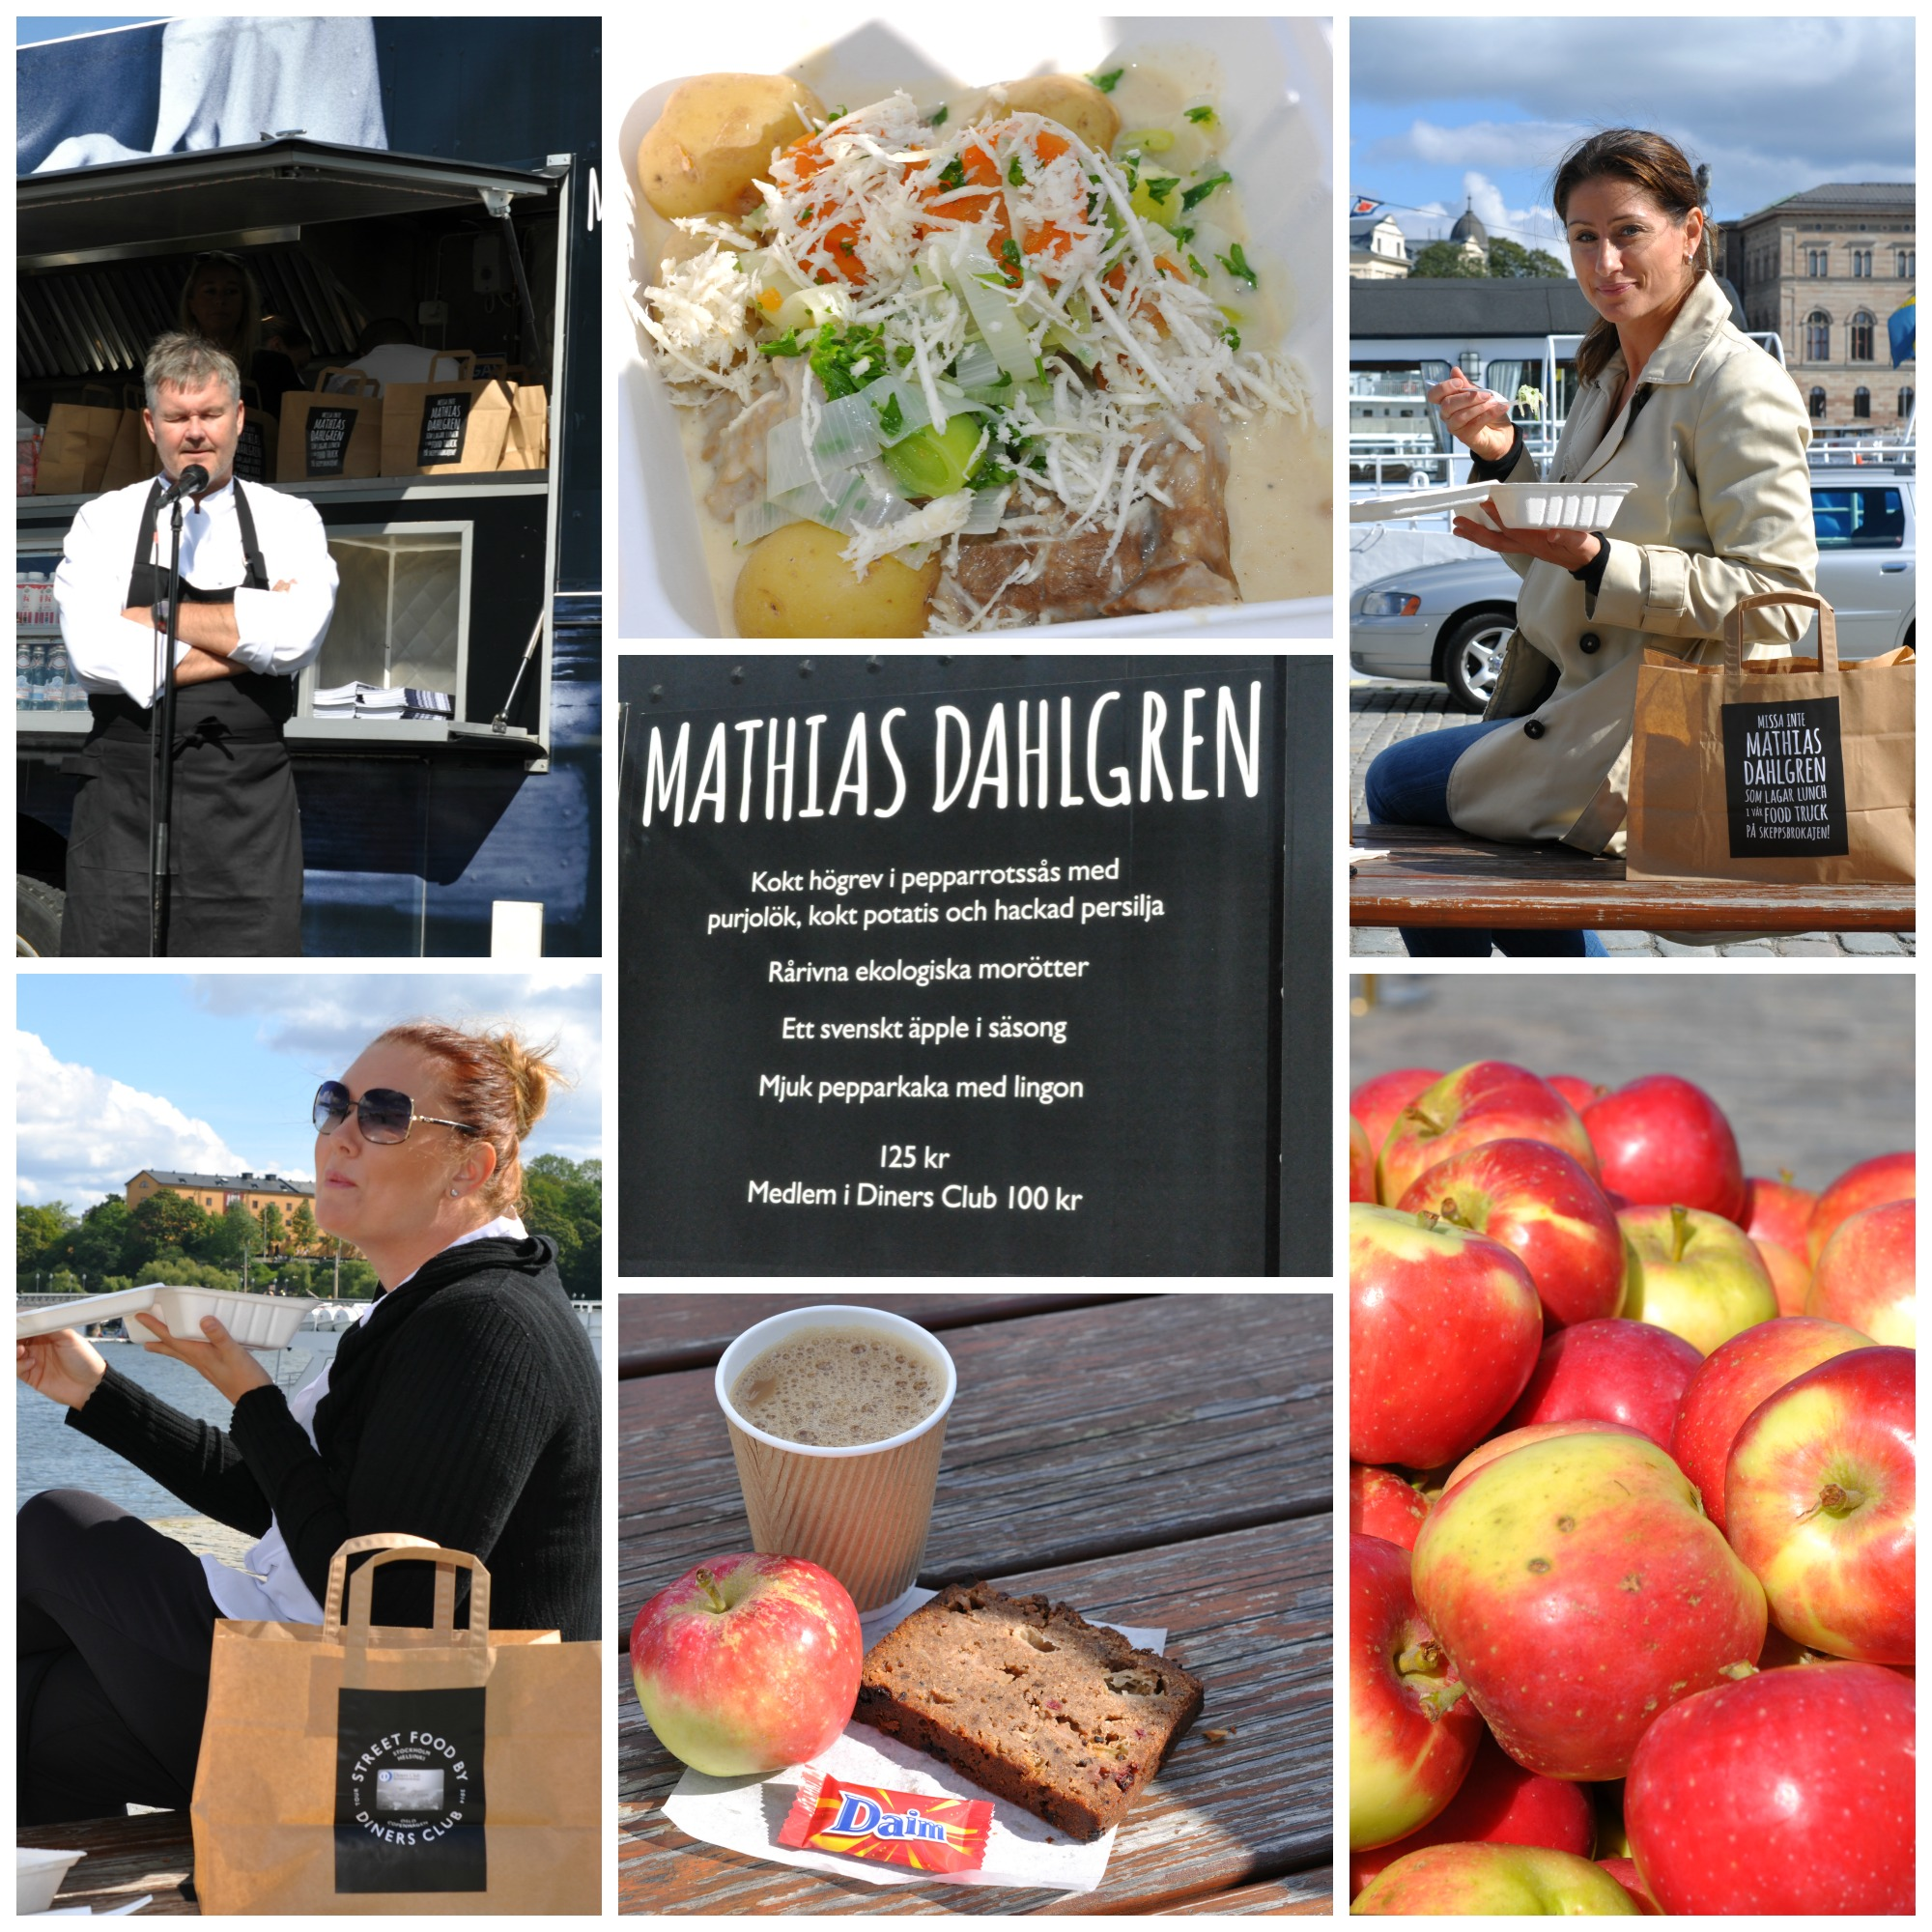 Mathias dahlgren street food